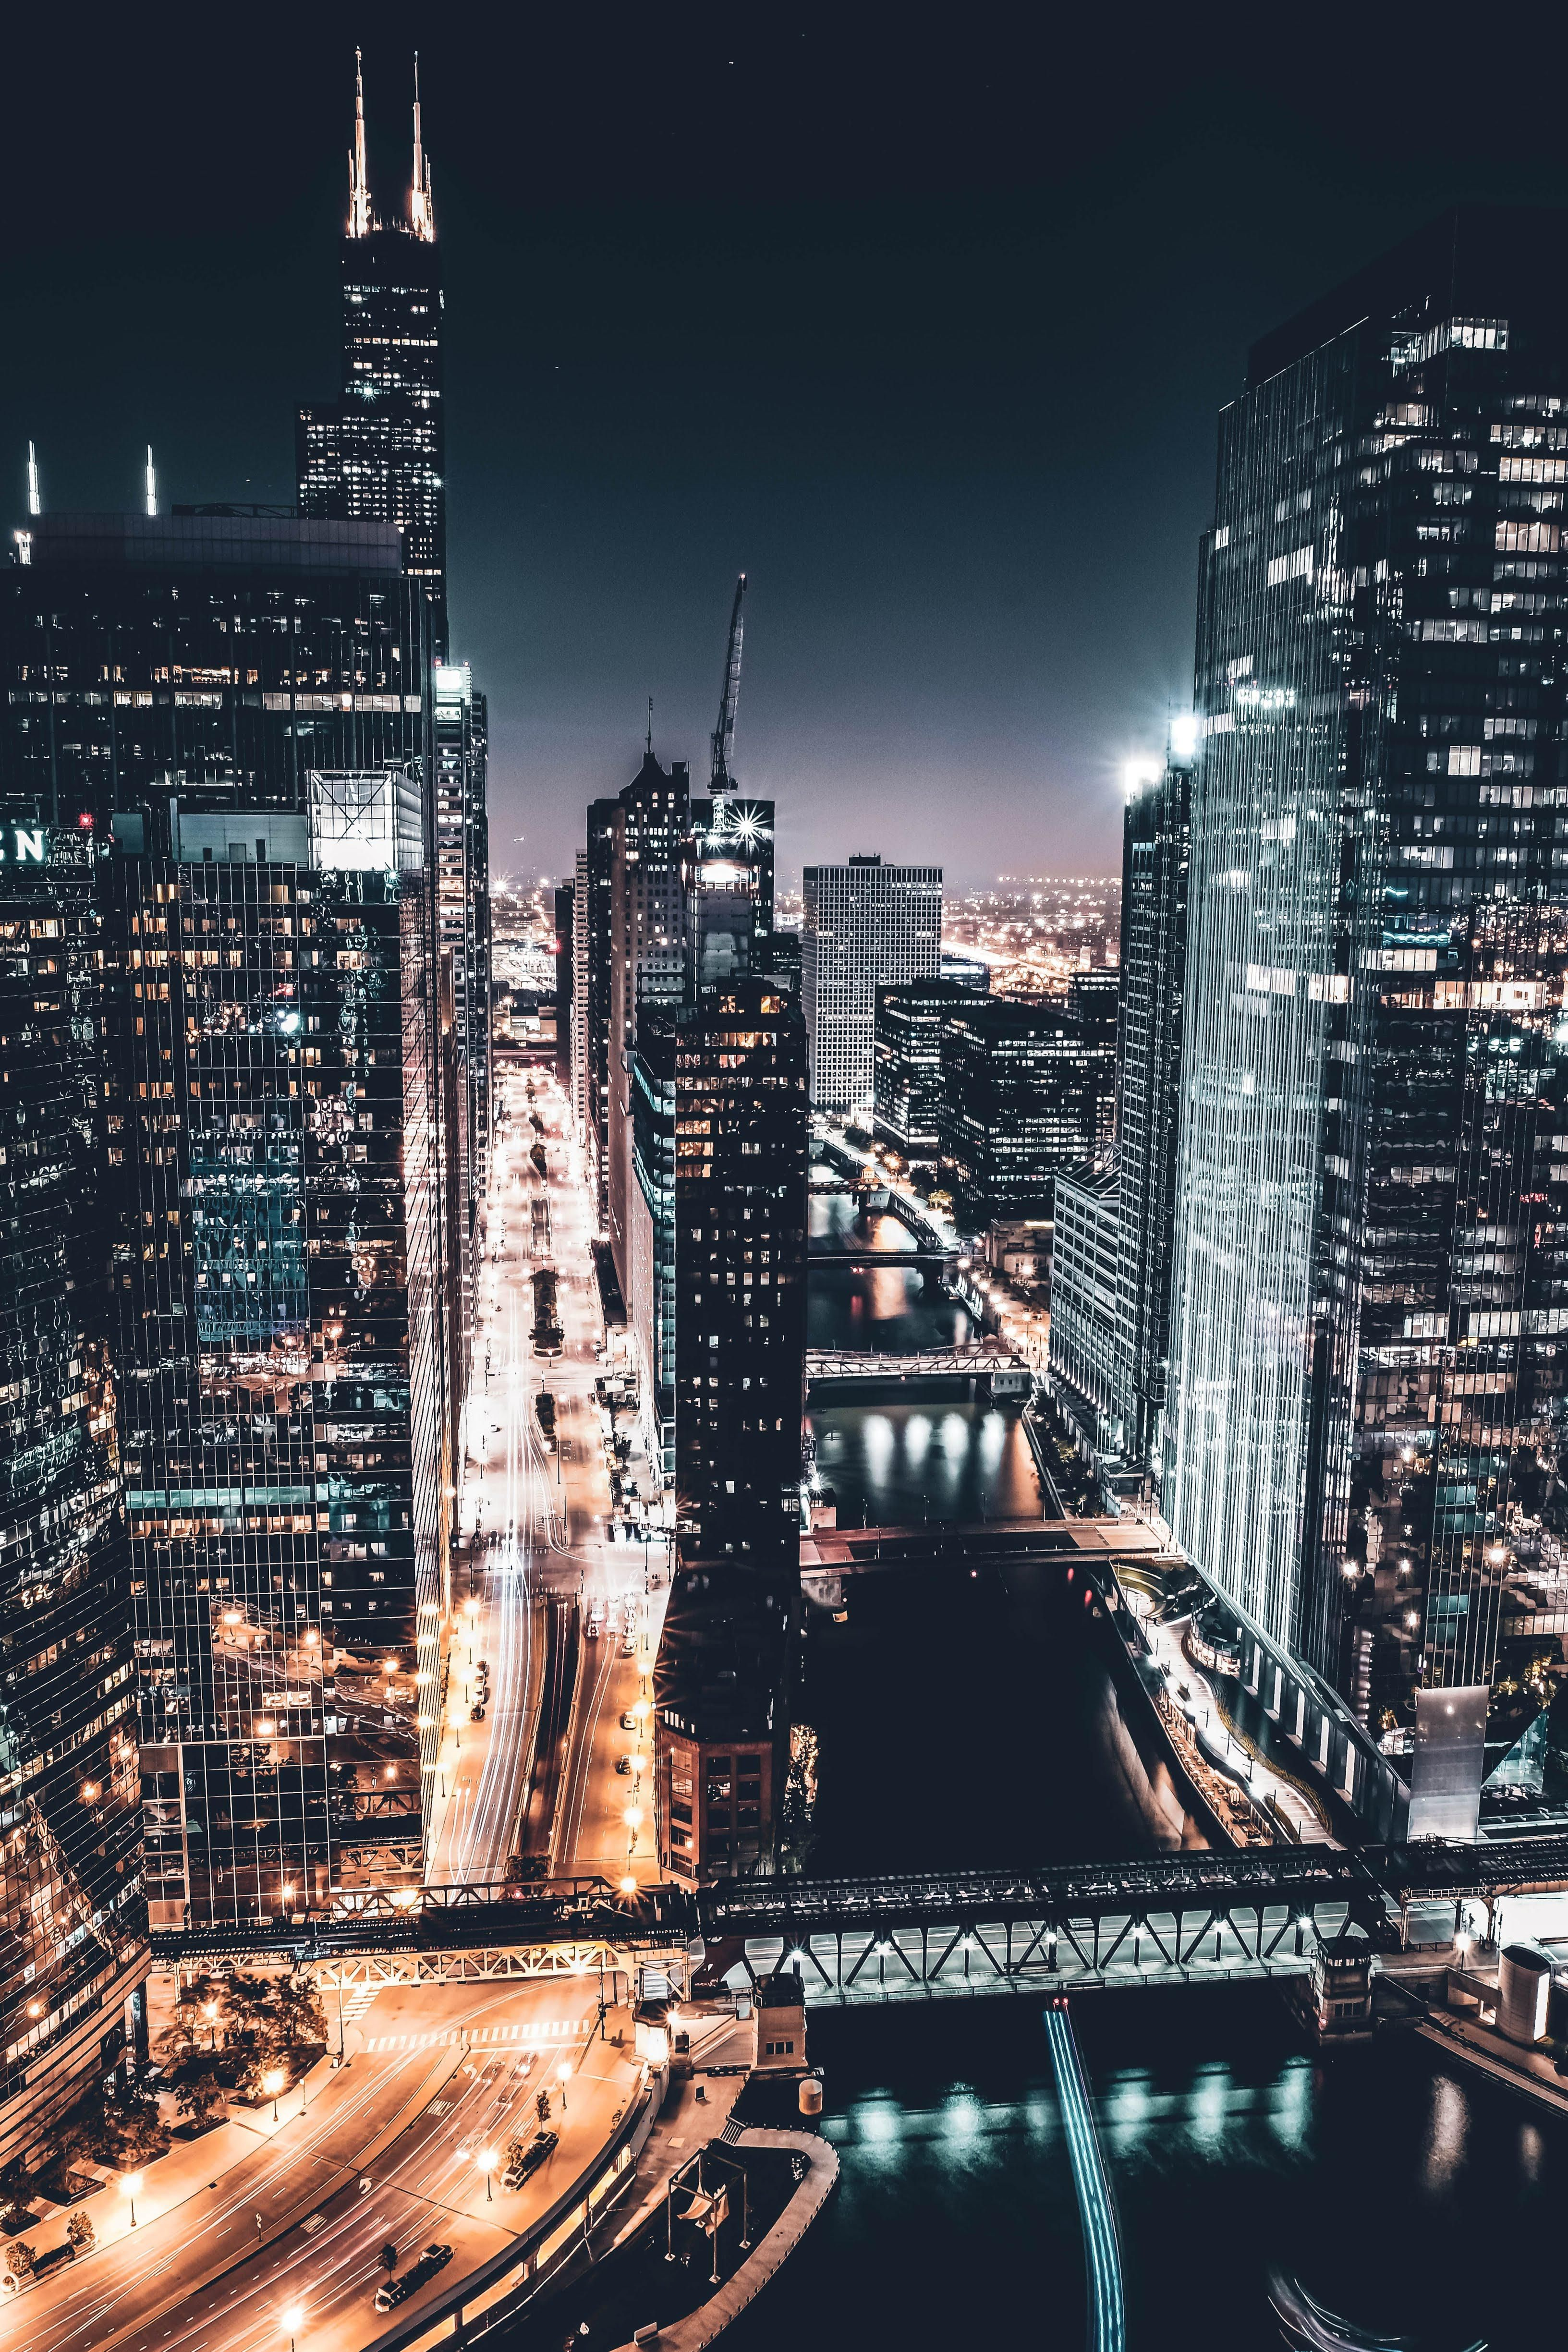 During A Cold Chicago Night City Cities Buildings Photography City Aesthetic City Wallpaper Chicago Aesthetic